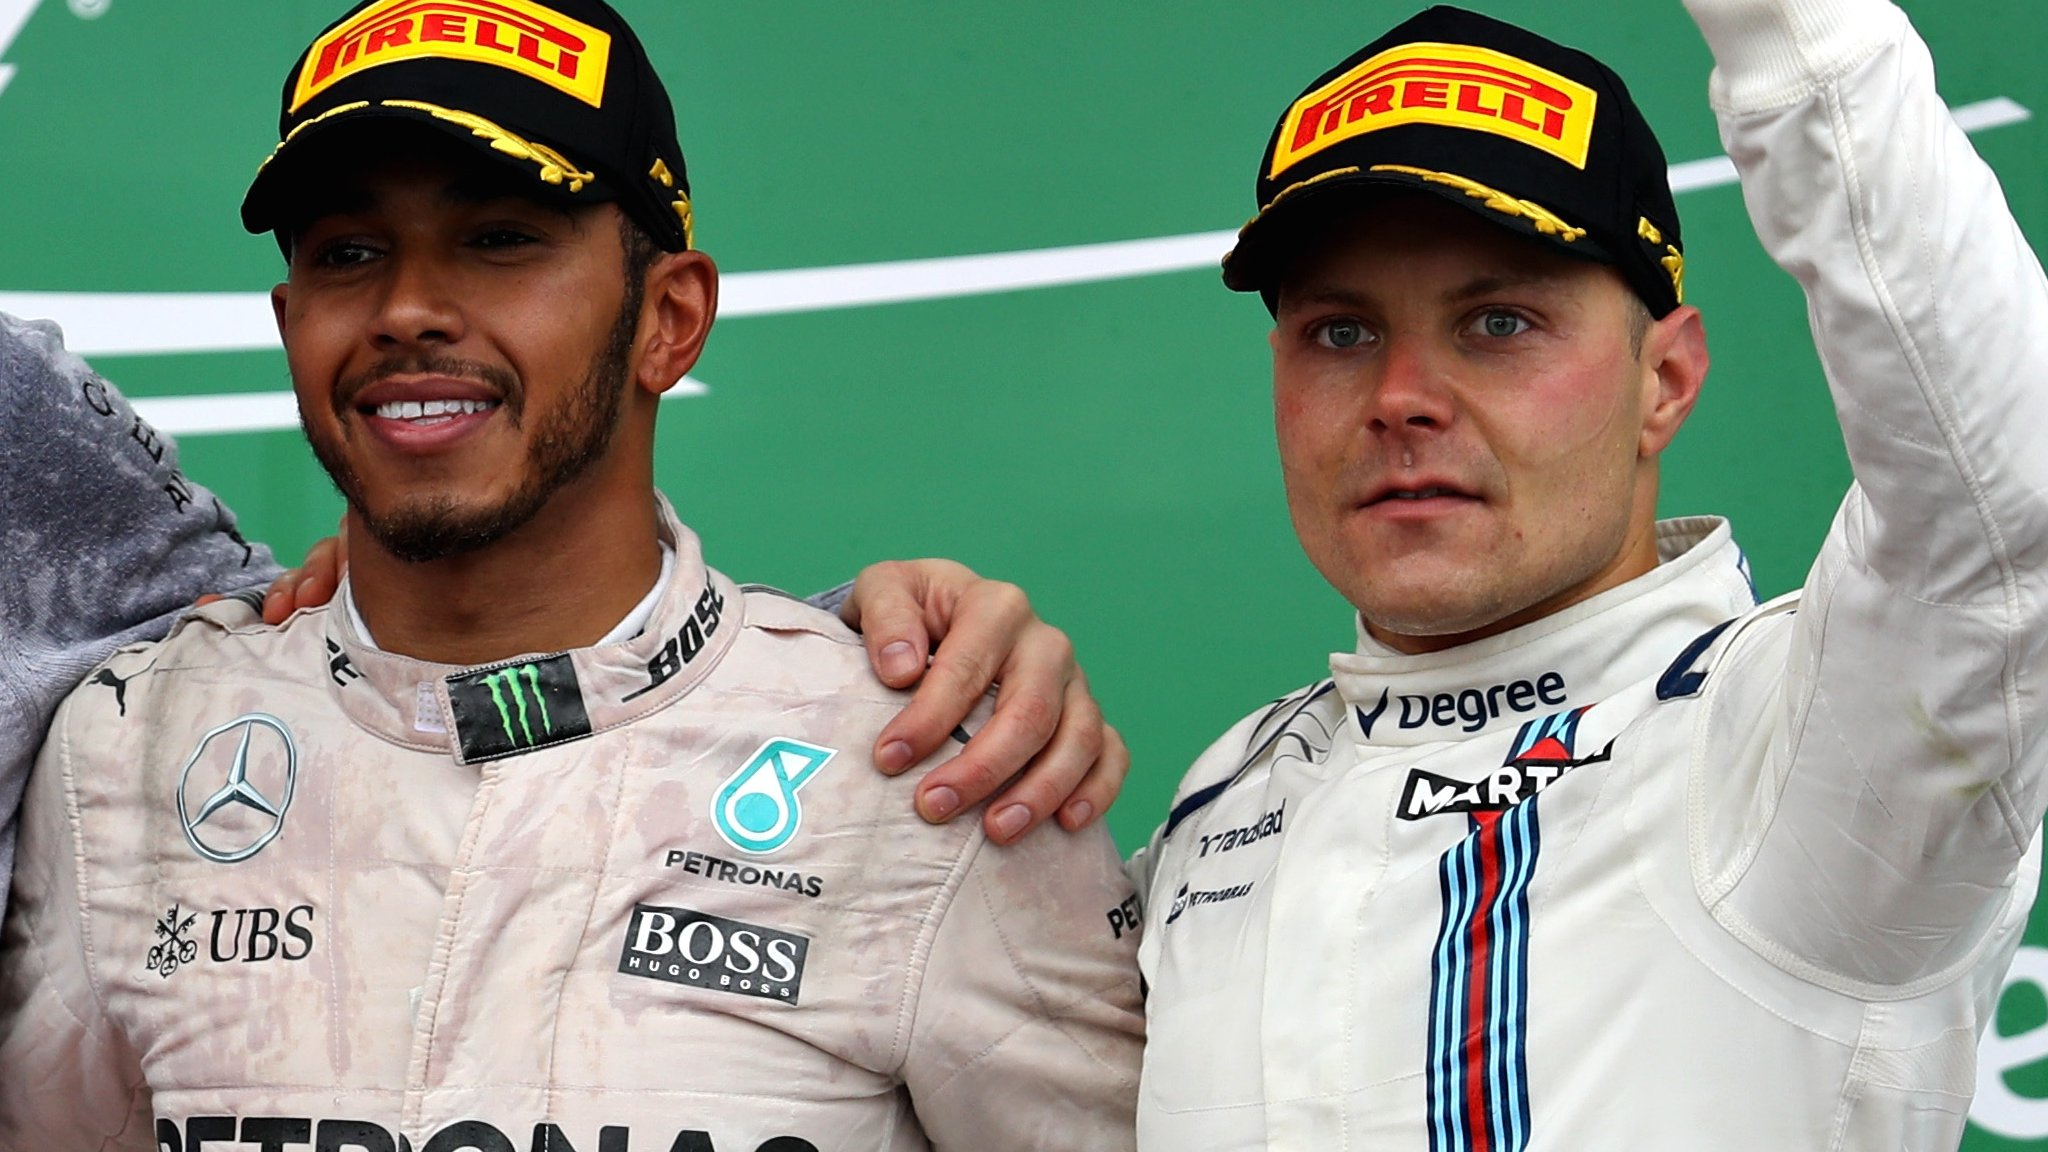 Lewis Hamilton: Mercedes driver backs new team-mate Valtteri Bottas